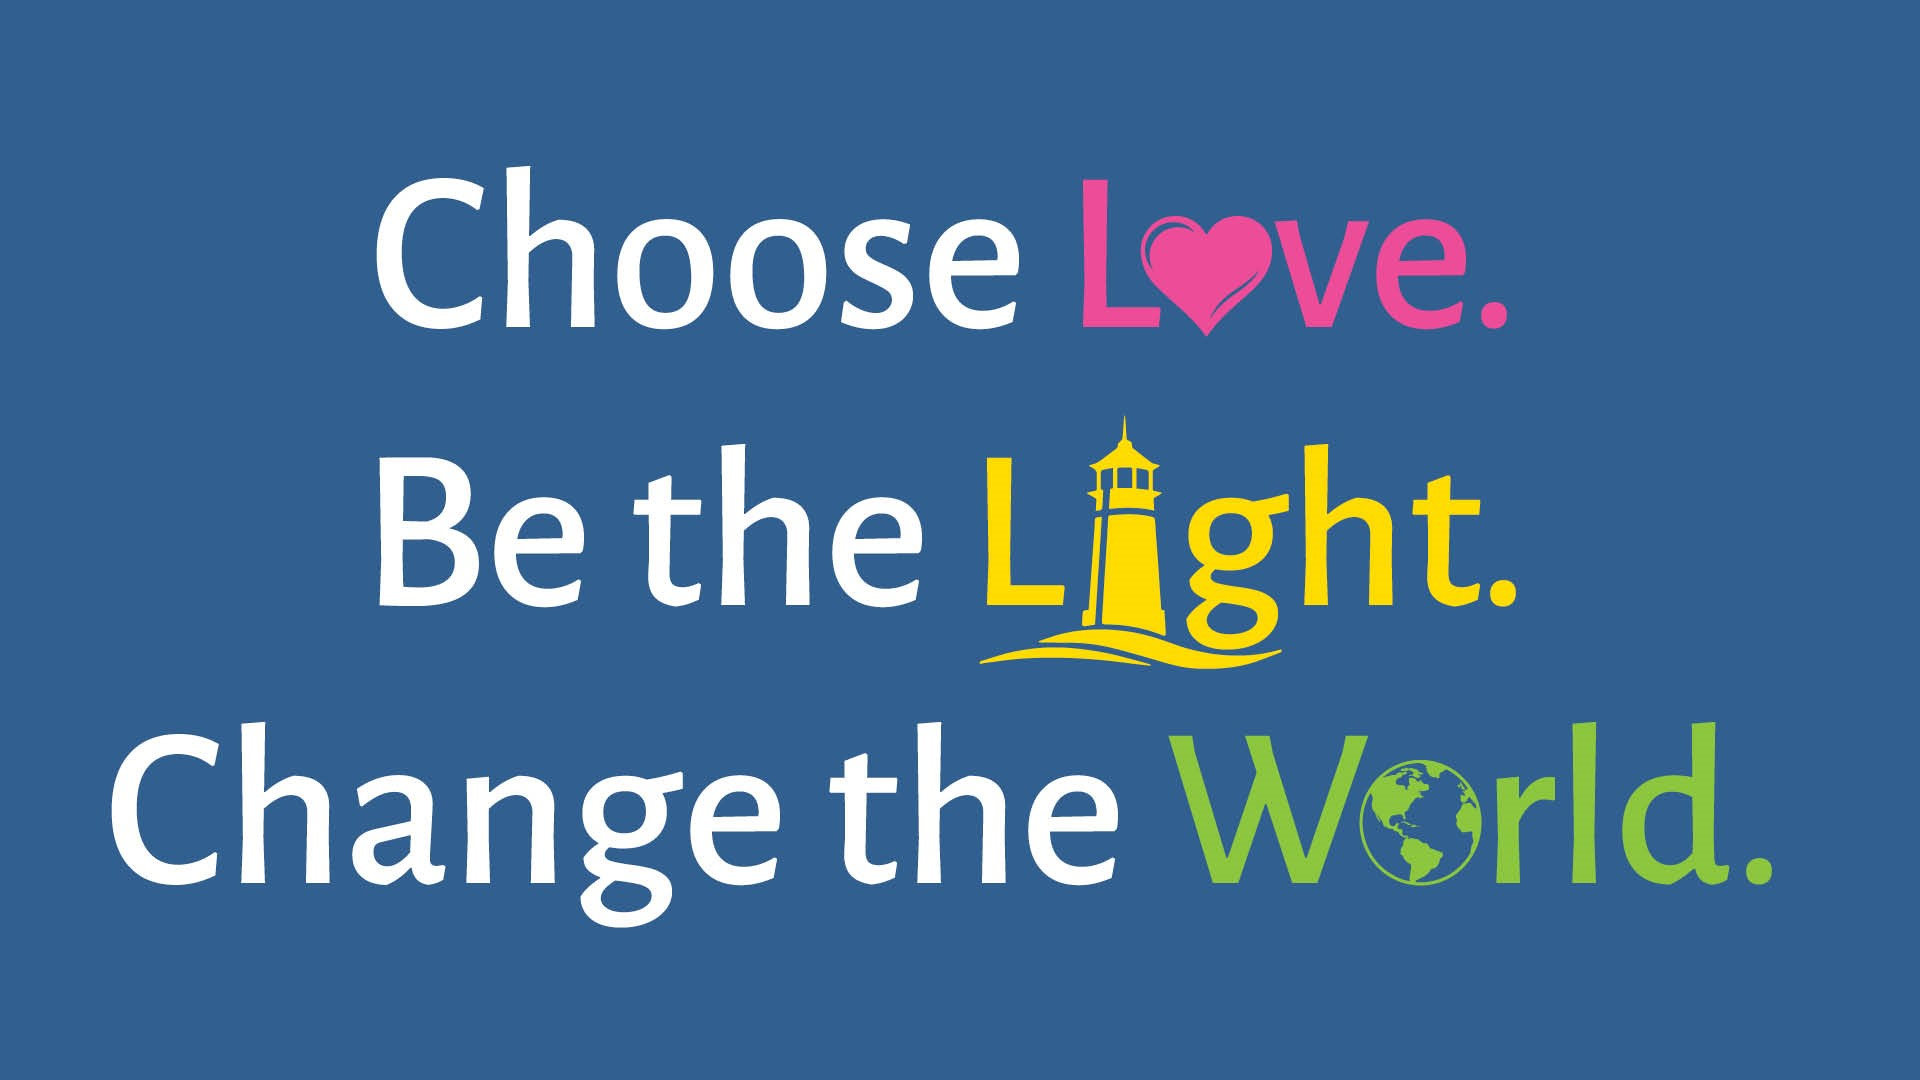 Choose Love. Be the Light. Change the World